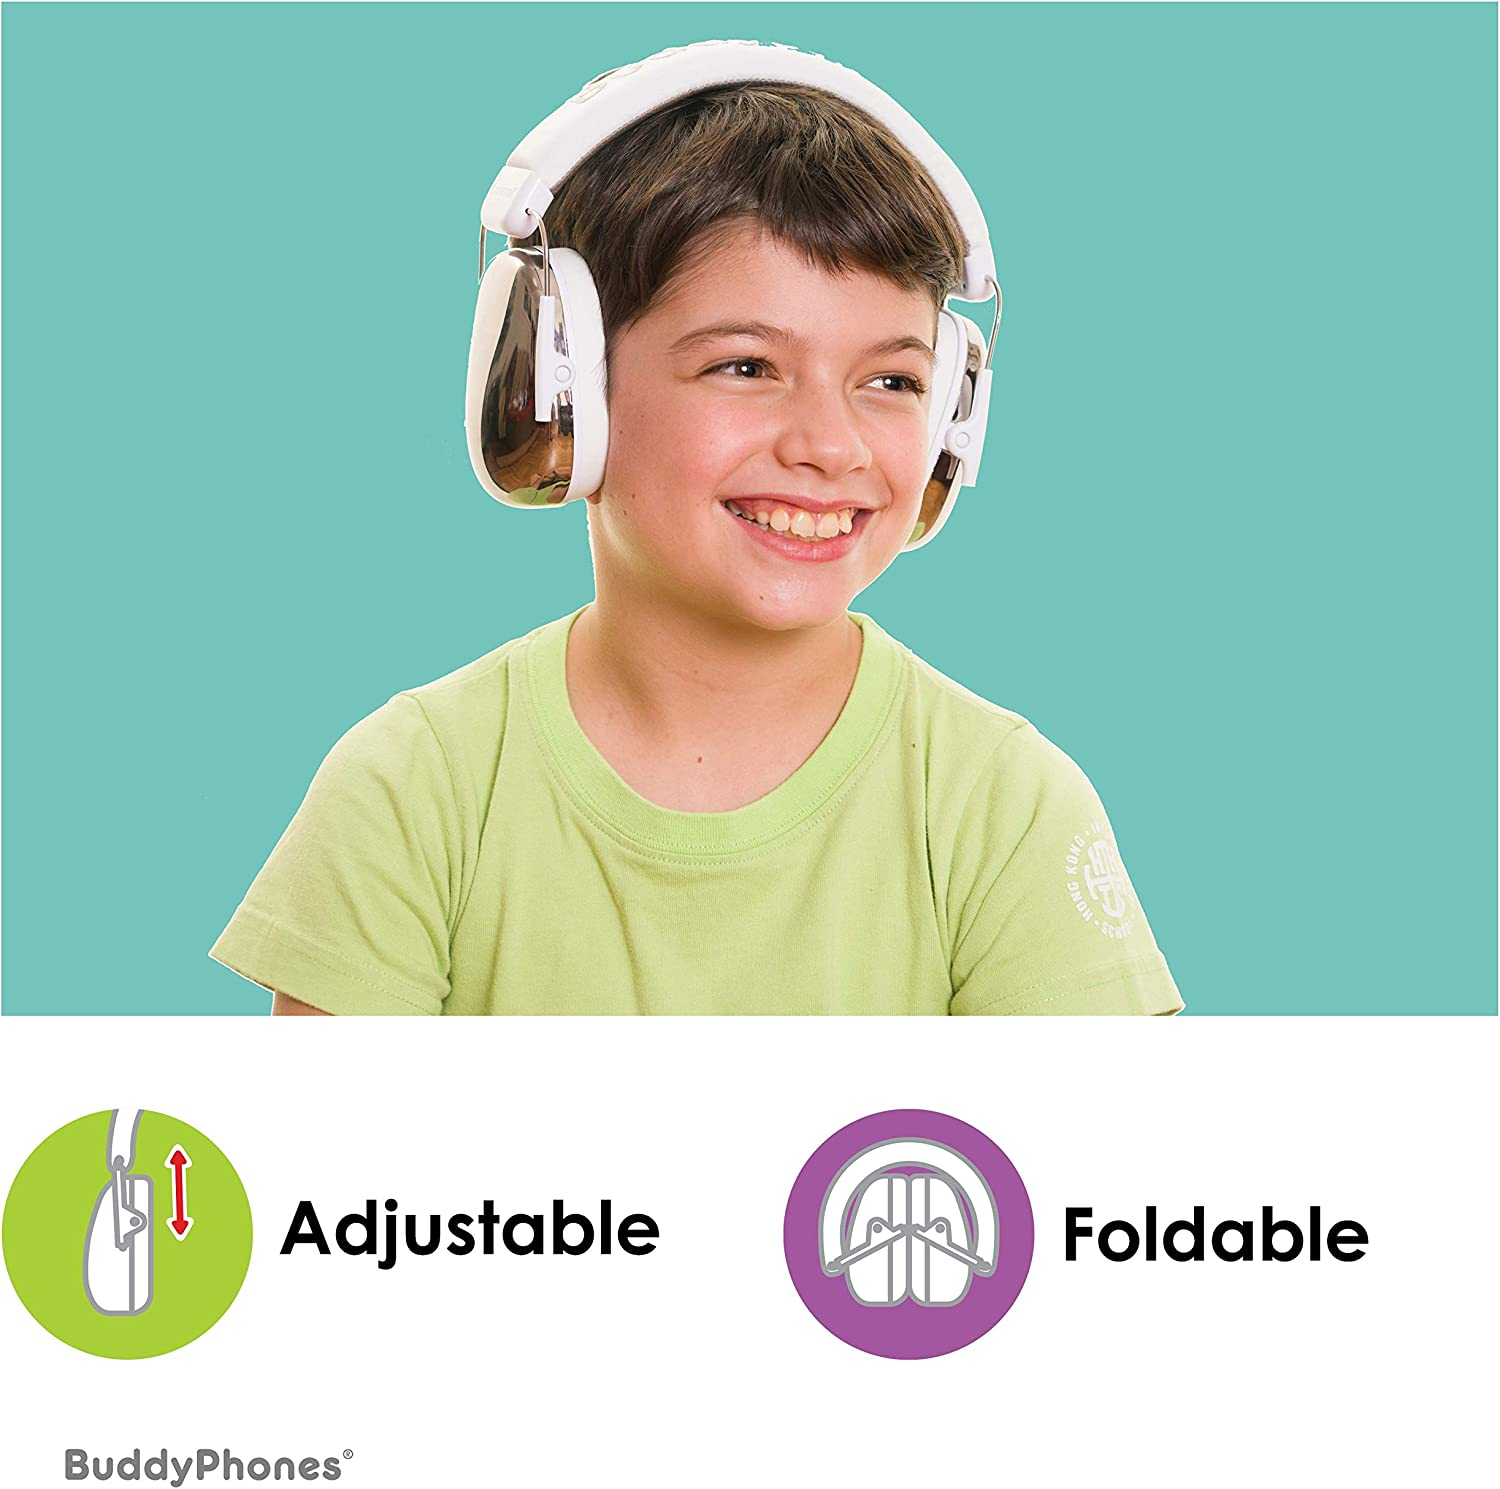 Children and Teens Passive Noise-Cancellation For Safe Hearing Levels Muffs Designed for Noise Reduction 26dB NRR Pink ONANOFF BuddyPhones Guardian Kids Ear Protection Earmuffs Perfect for Toddlers